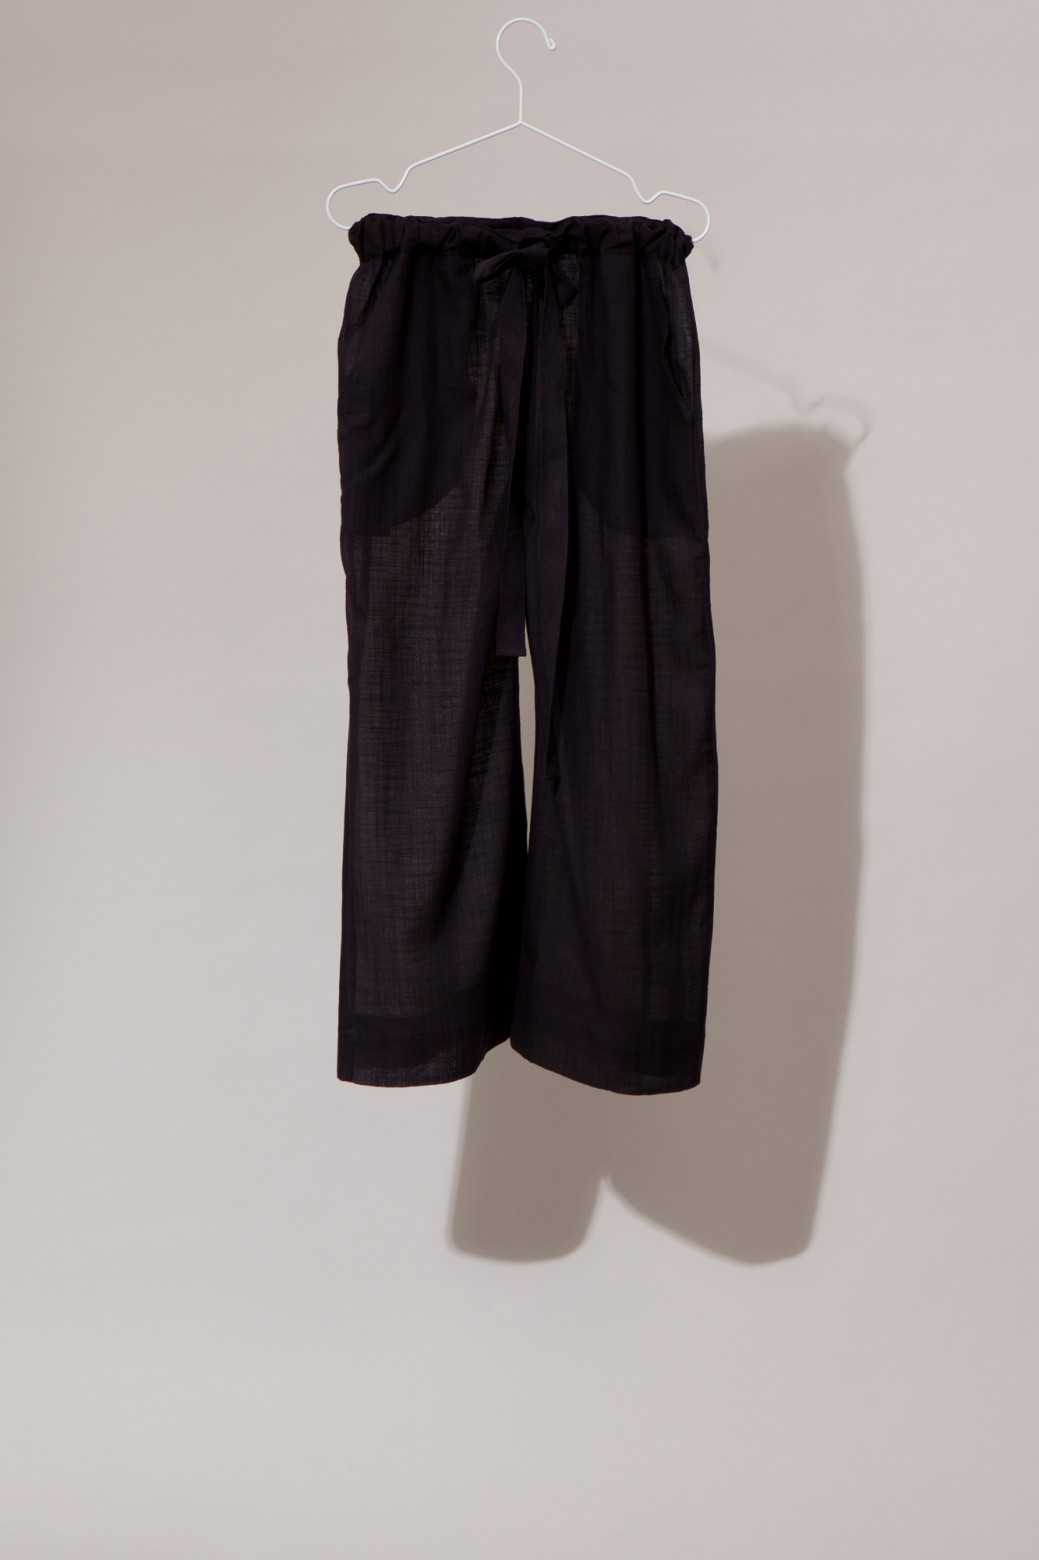 COMORE BLACK TROUSERS